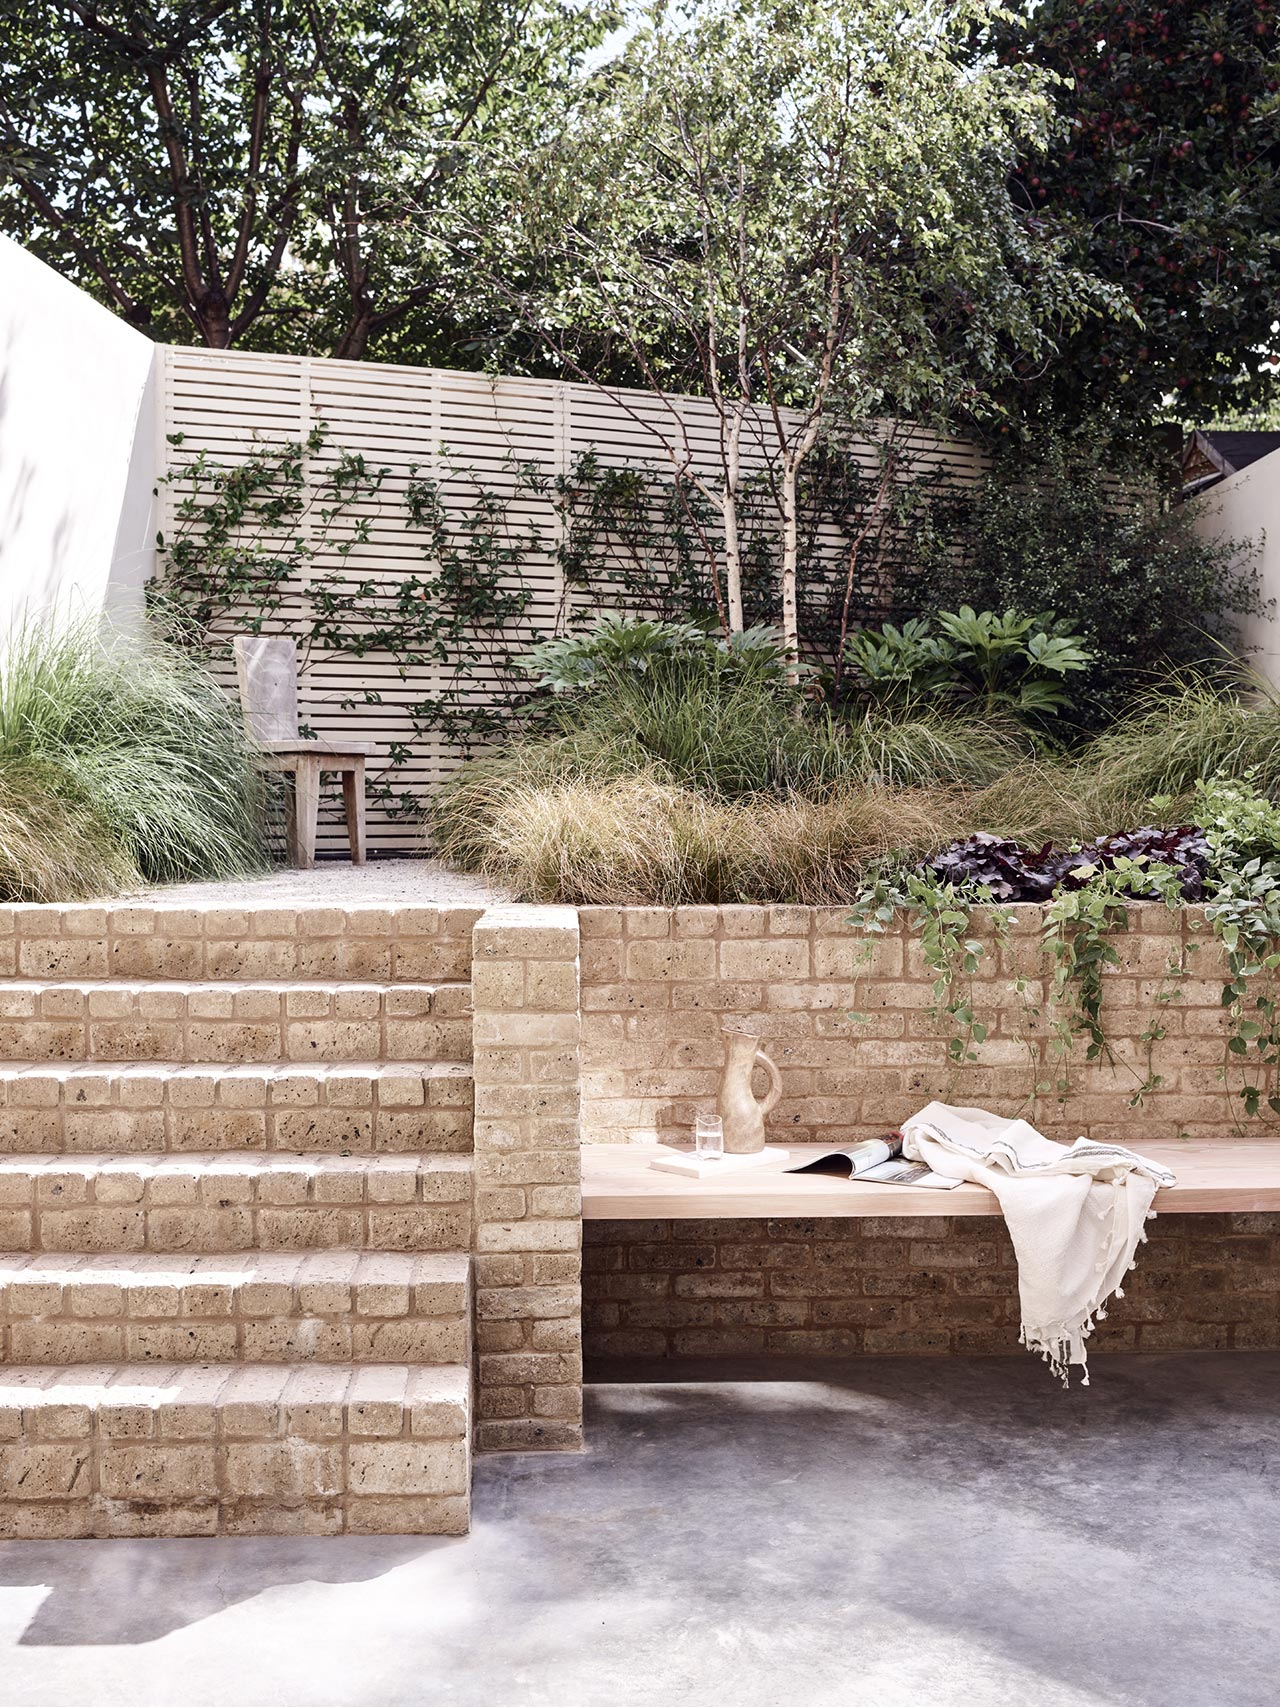 The outdoor space is also manicured, its landscaping was carefully done to match